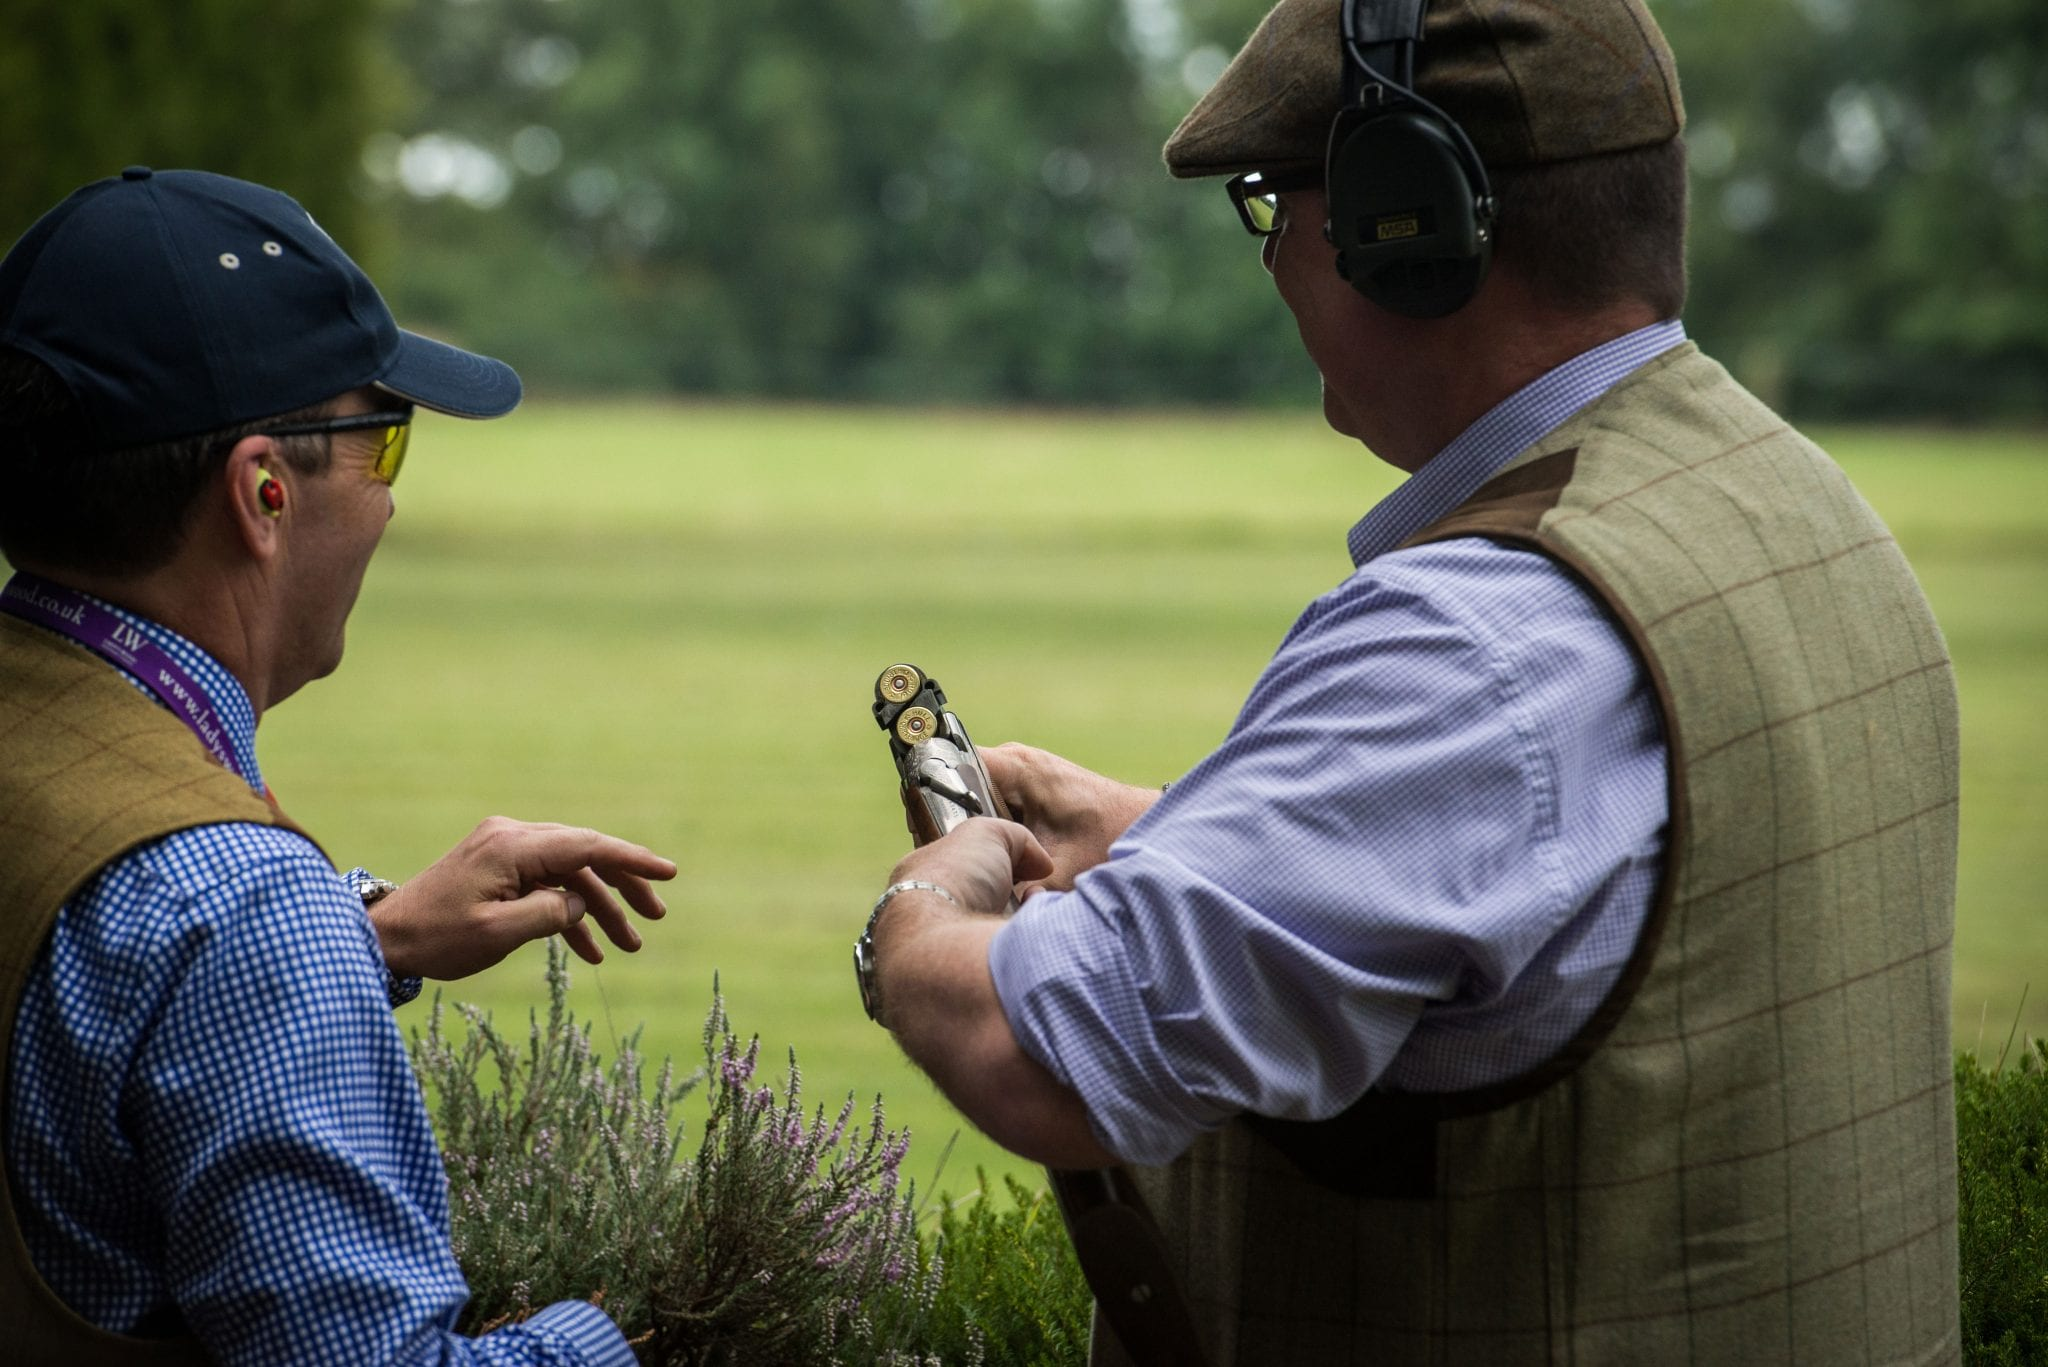 Father's Day Clay Pigeon Shooting